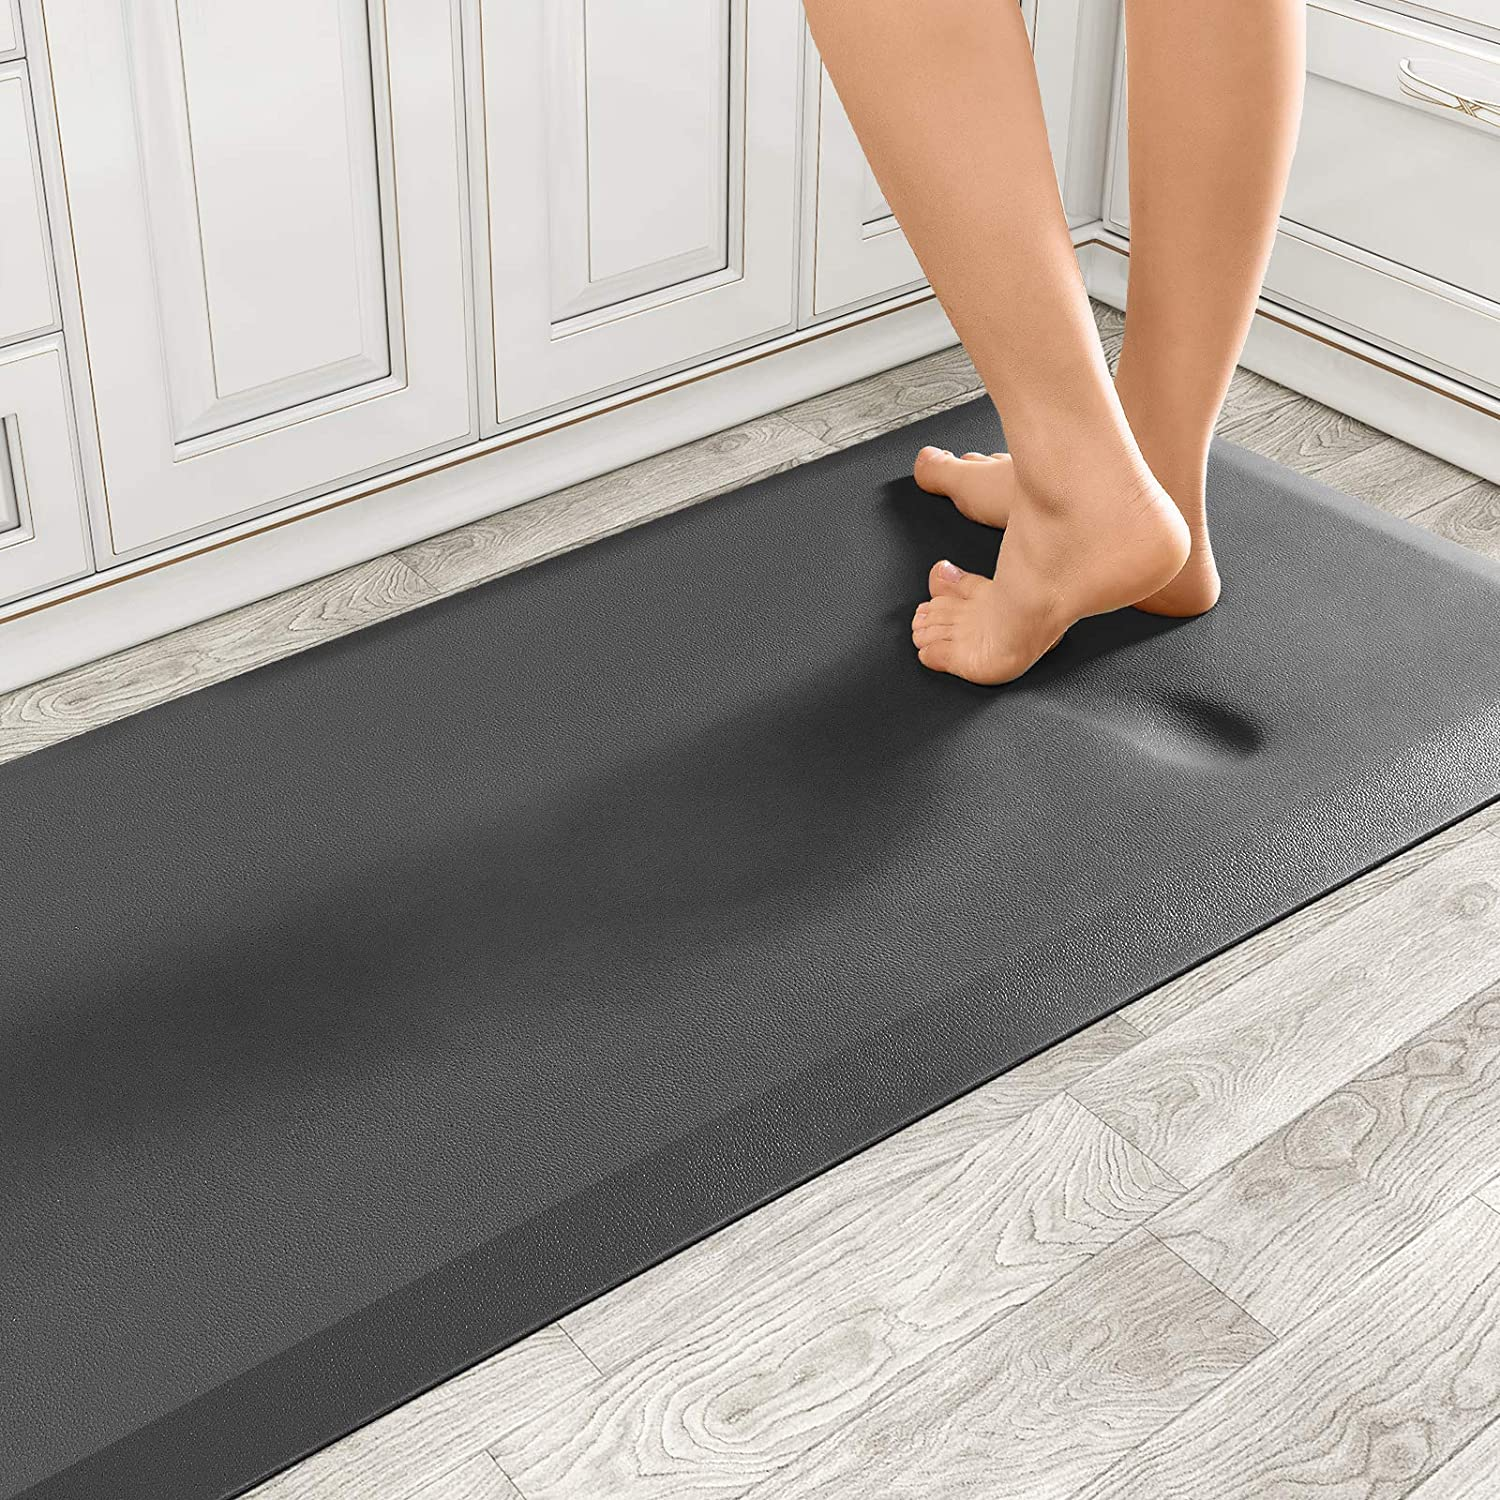 Standing Mat Non Slip Animer and price revision Anti Fatigue inch 0.75 Floor Kitchen Mats Many popular brands